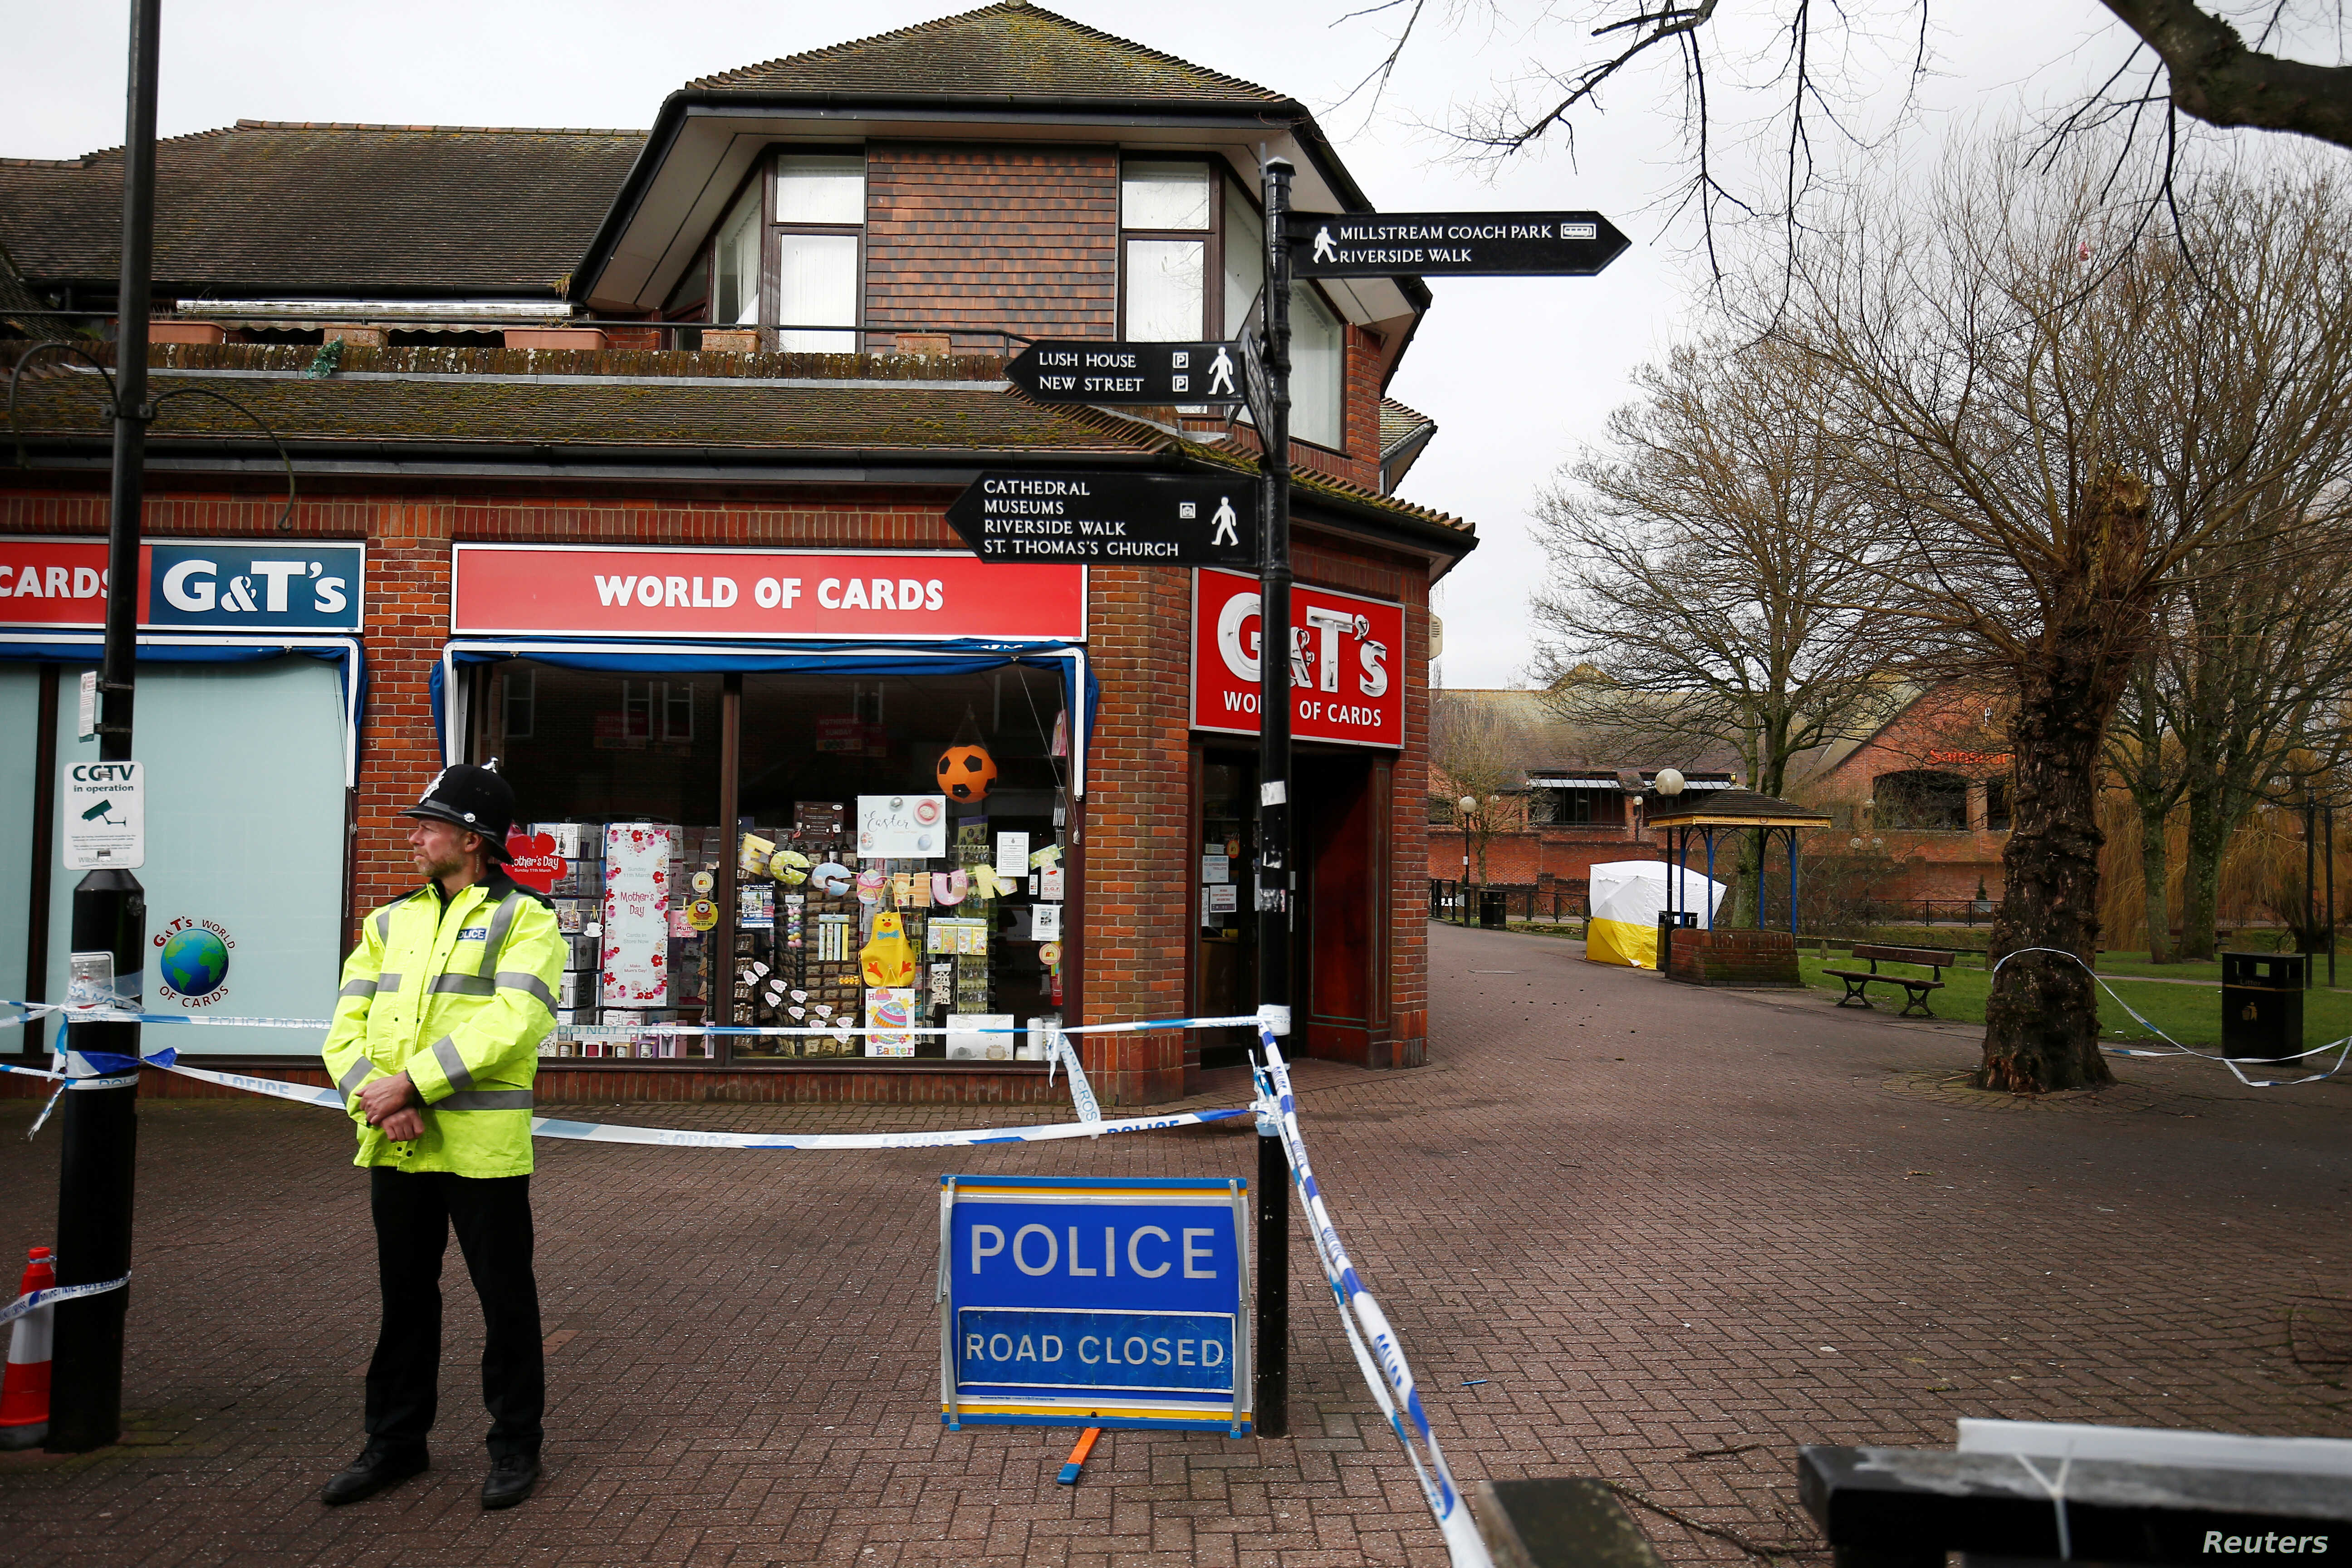 A police officer stands at a cordon around the bench where former Russian intelligence agent Sergei Skripal and his daughter Yulia were found after they were poisoned, in Salisbury, Britain, March 11, 2018.